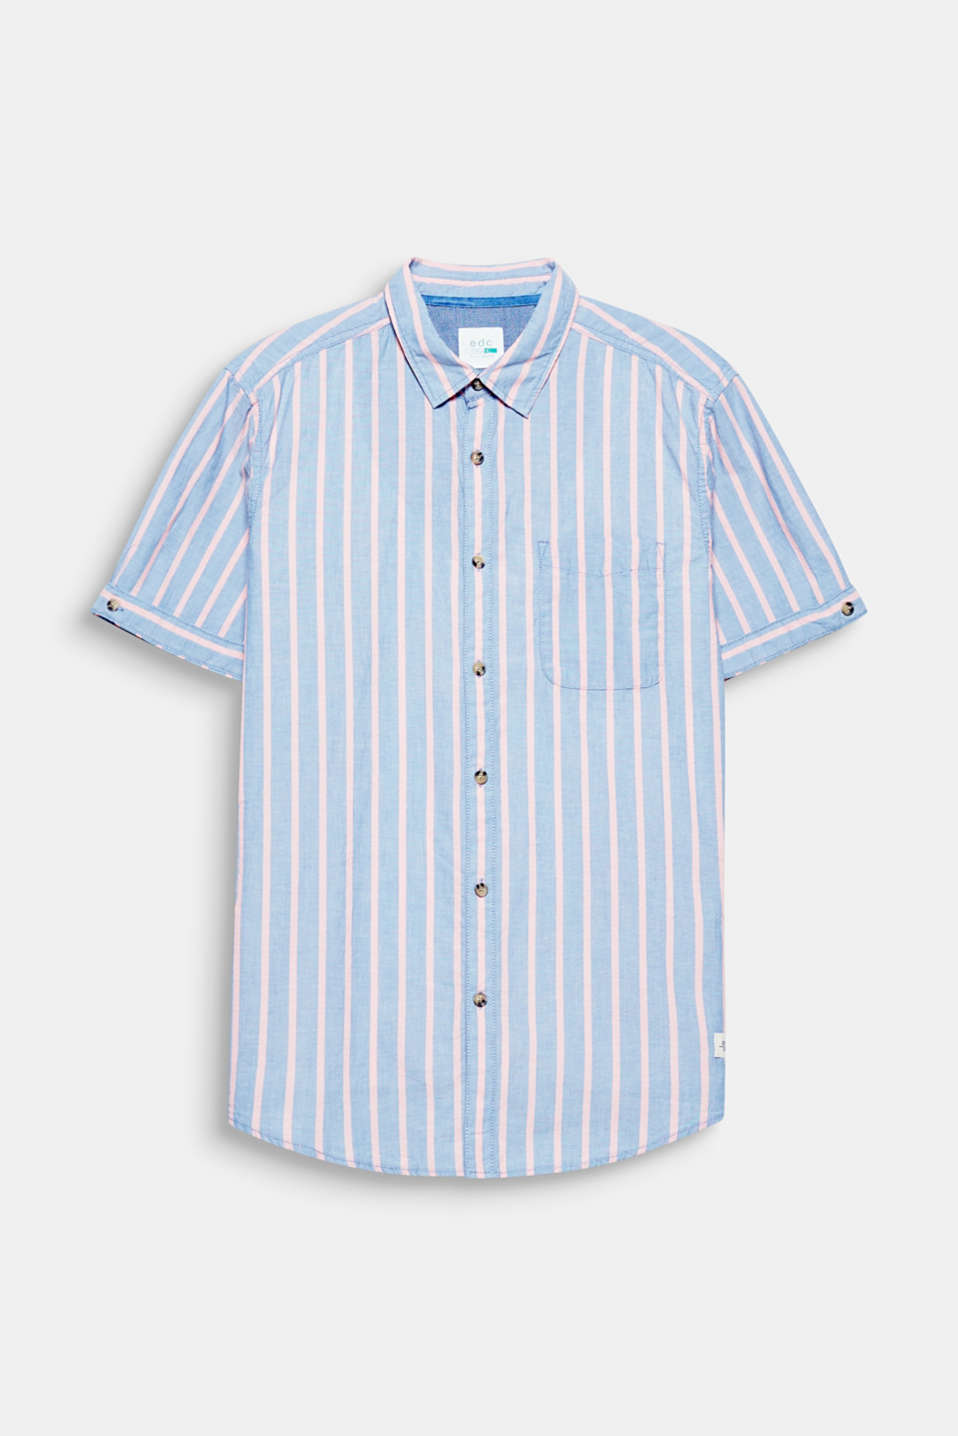 Vertical stripes in a trendy pastel tone and the light melange fabric give this short sleeve shirt with certified organic premium cotton a summery on-trend look.